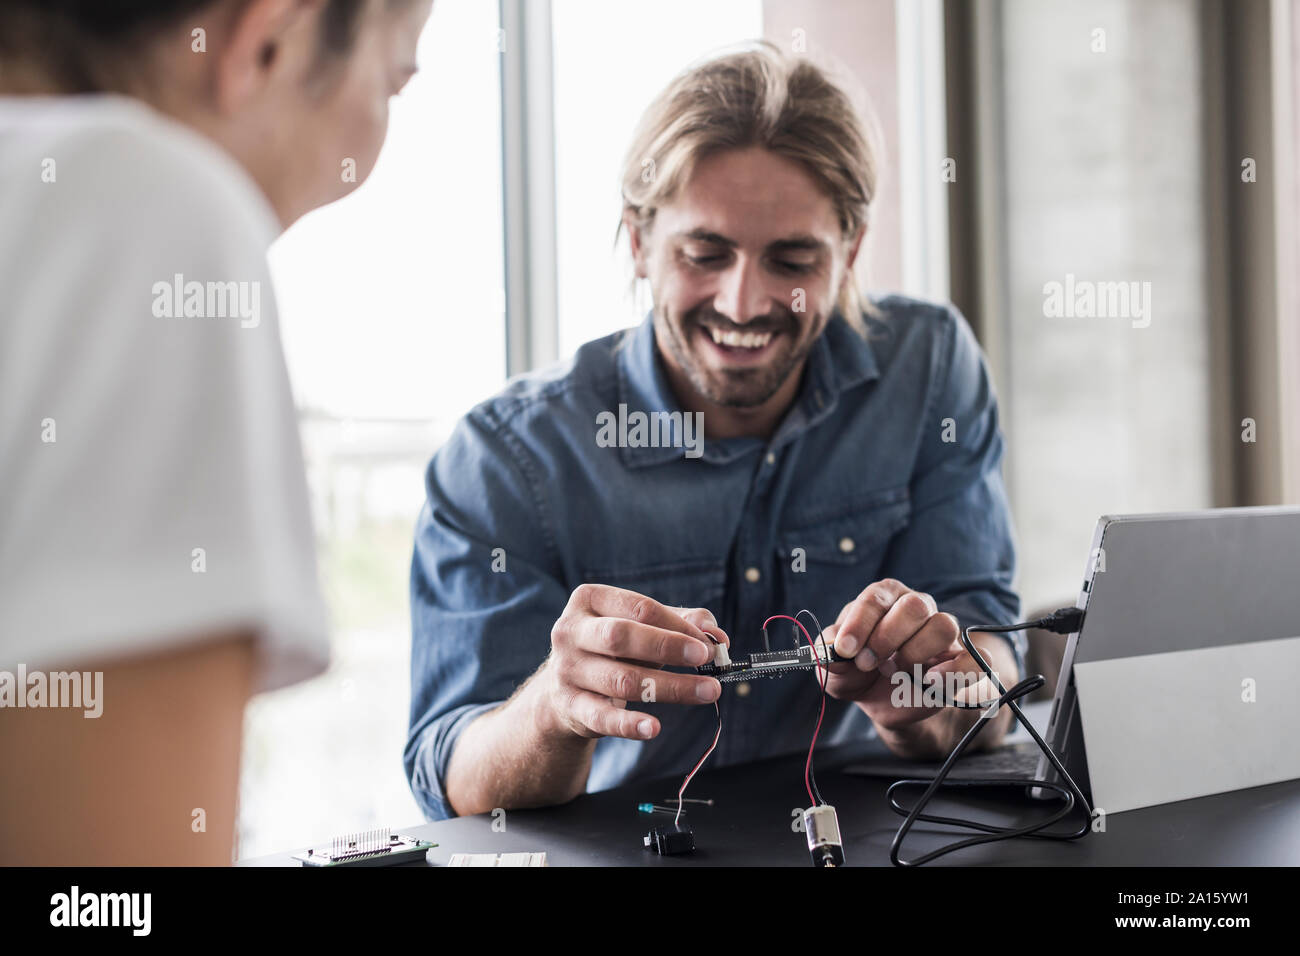 Smiling young man and woman working on computer equipment in office Stock Photo